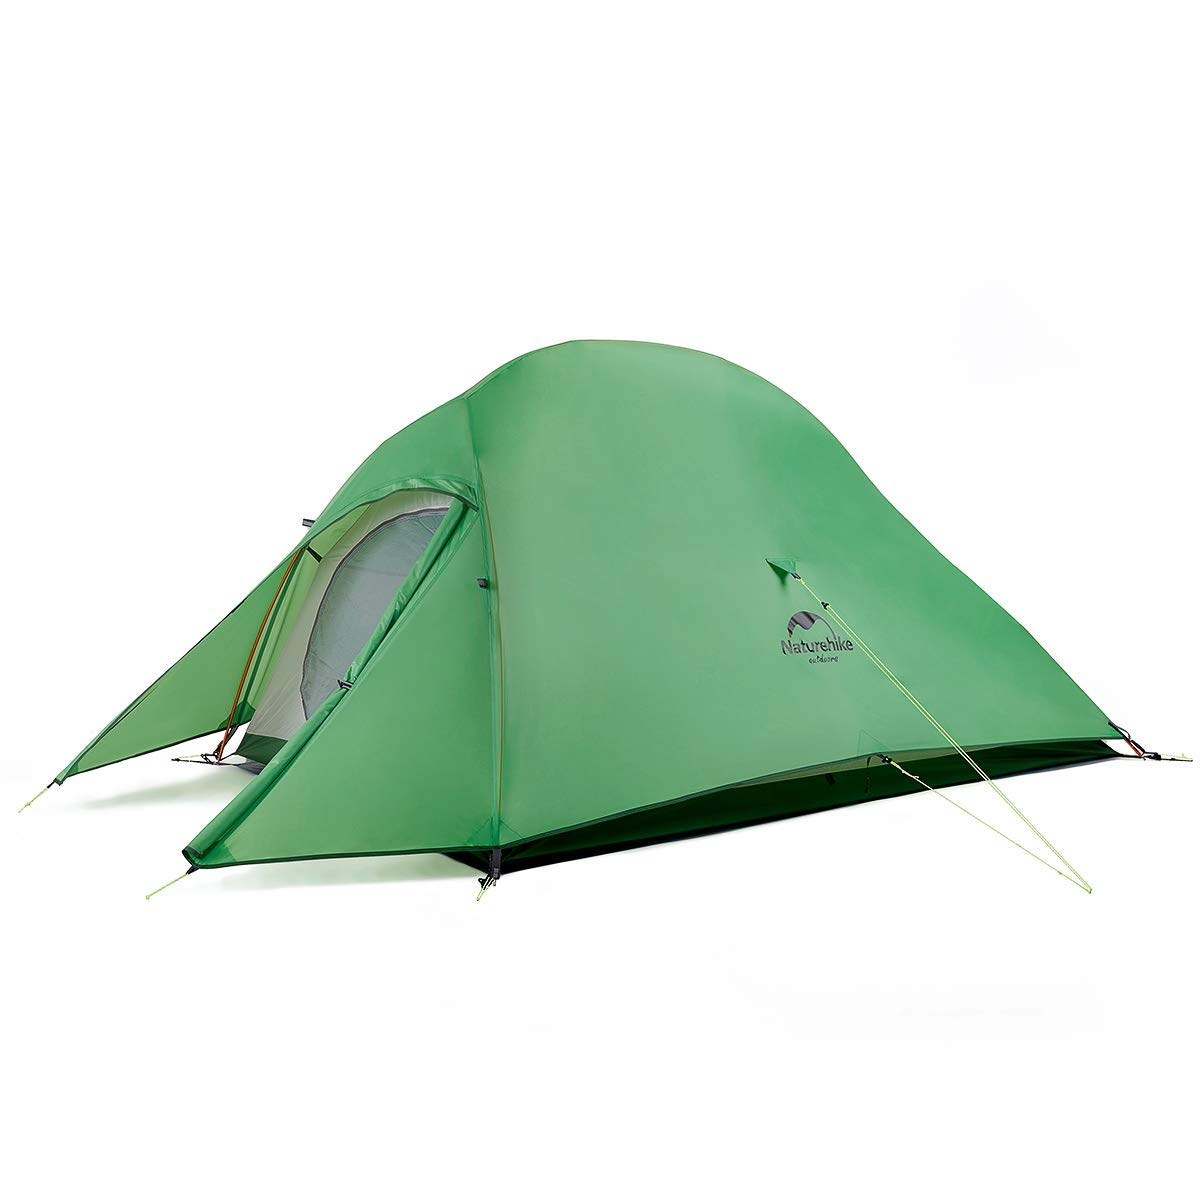 Naturehike Tent Upgrade Cloud Up Upgrade Ultralight 2 Person Tent for Camping,Backpacking,Hiking (Green(210T Polyester)) by Naturehike